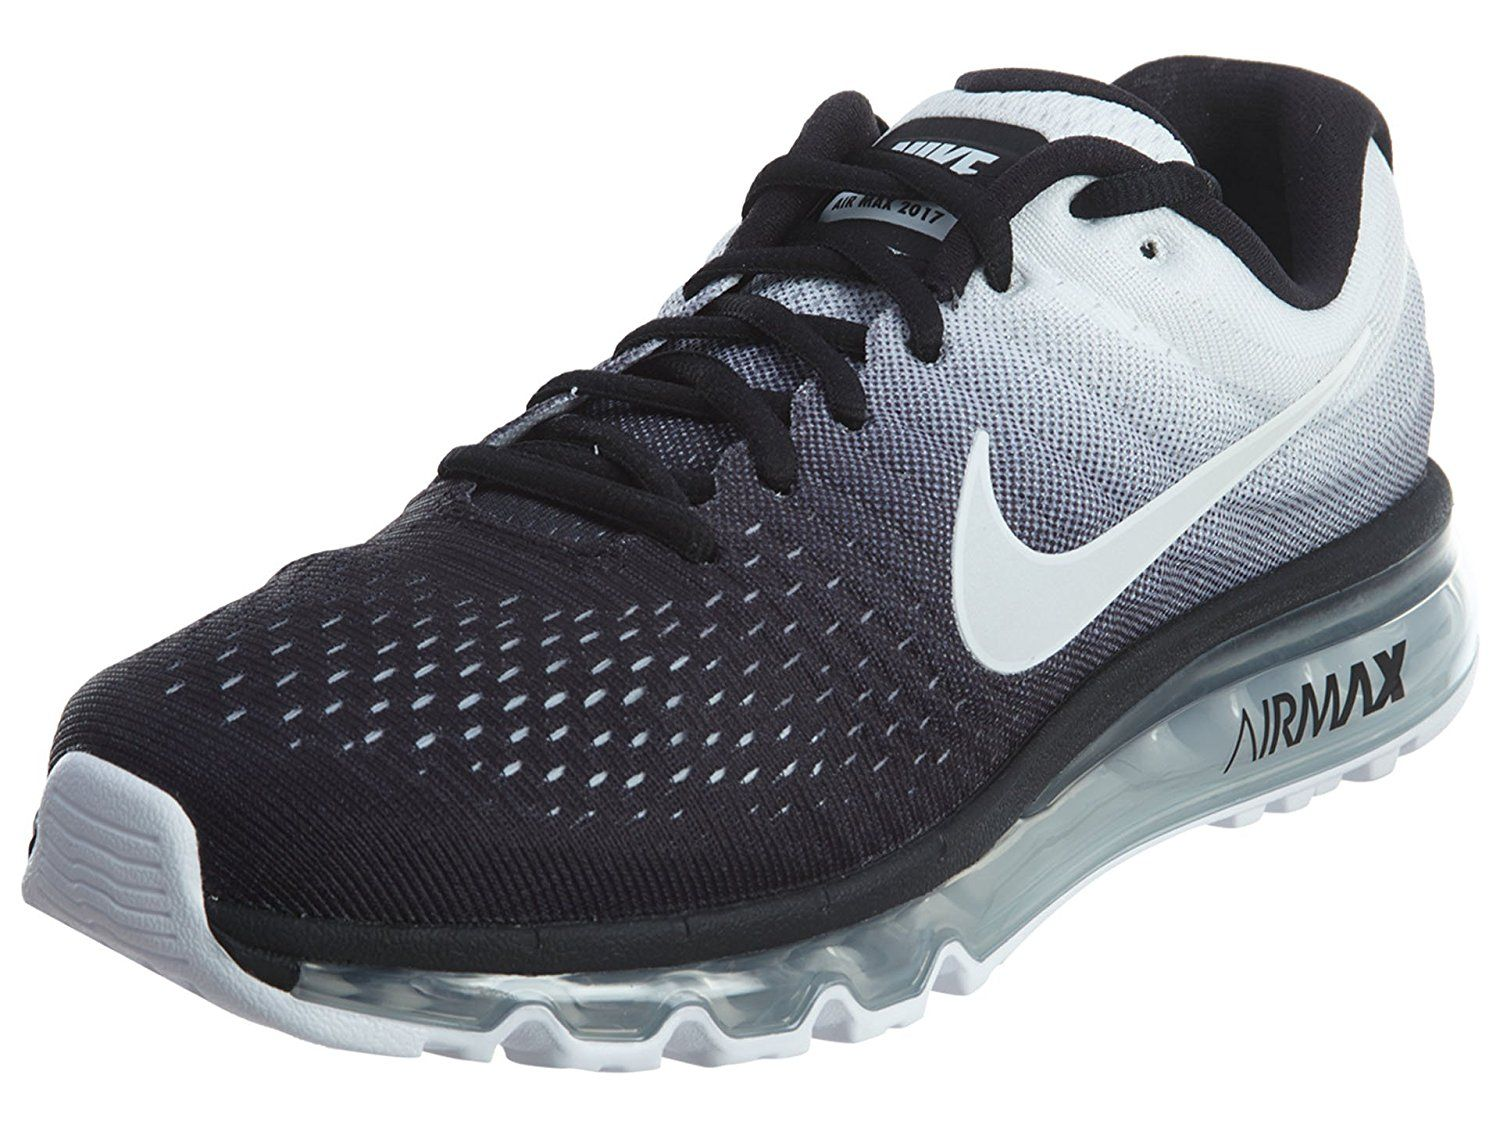 Nike Shoes Air Max 2017 Running Shoes Trainers for Men: Amazon.de: Sport